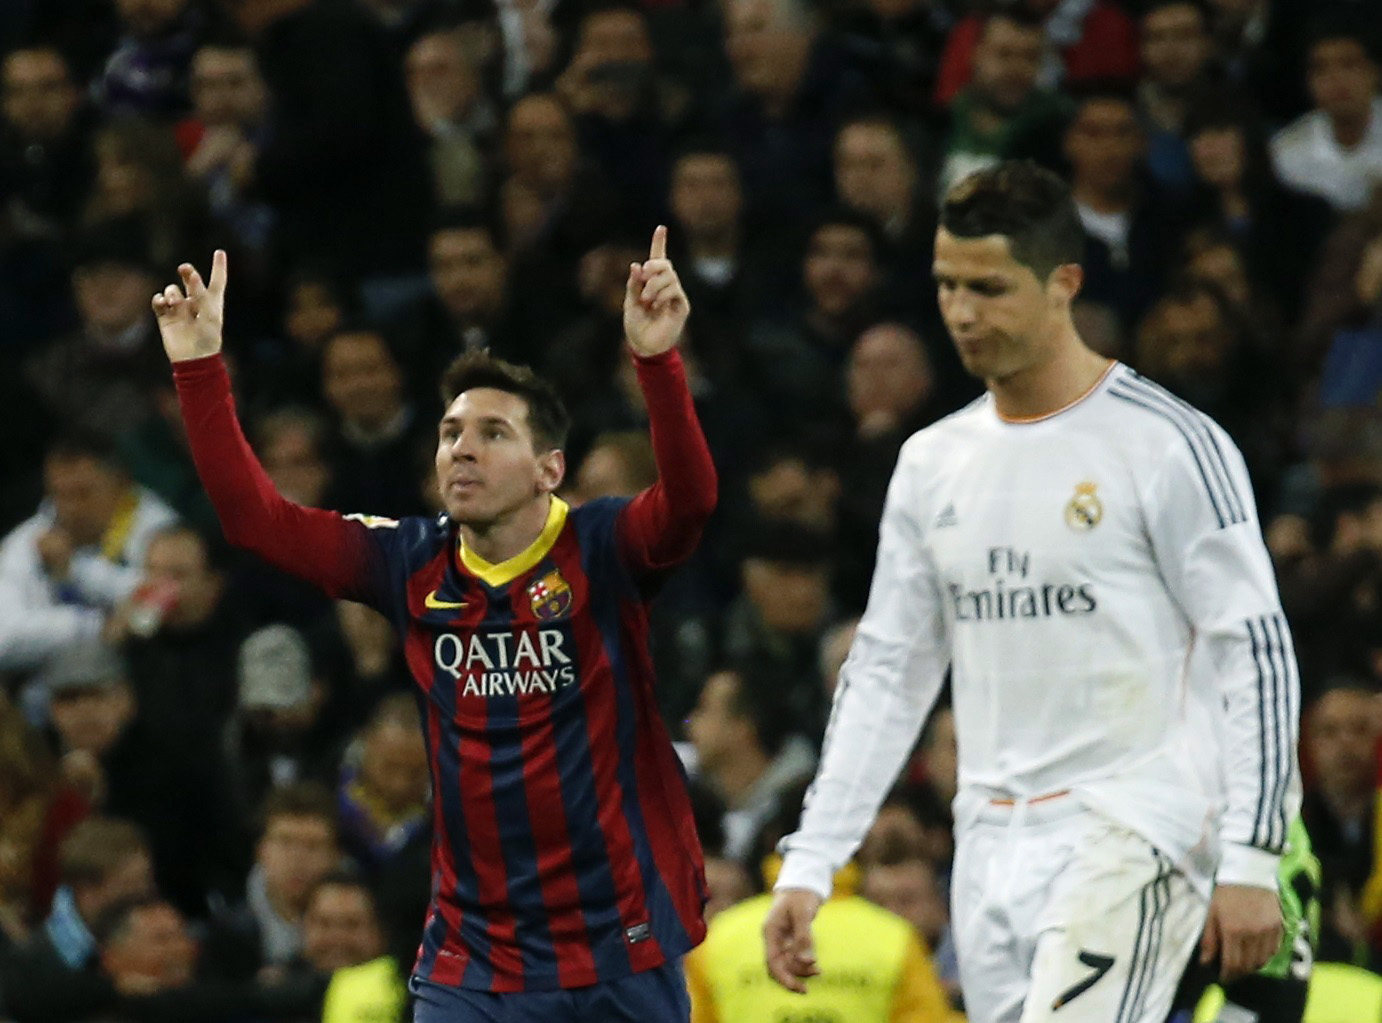 Messi celebrating with Cristiano Ronaldo crying over referee's decisions